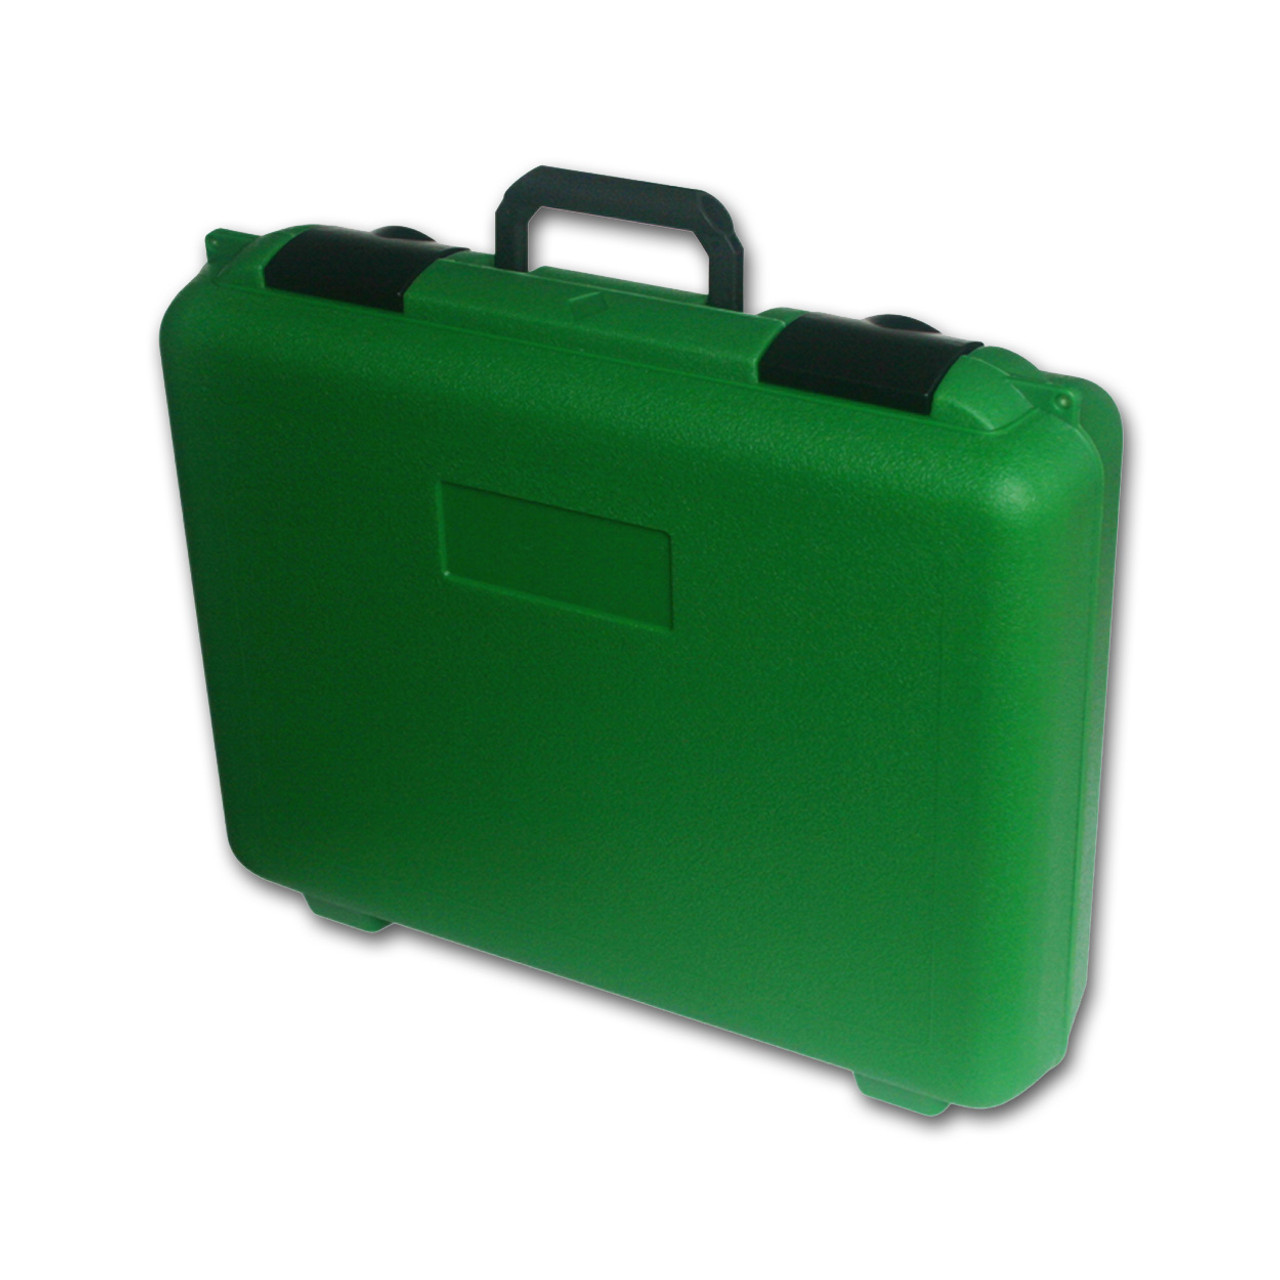 Carrying Case for foam products